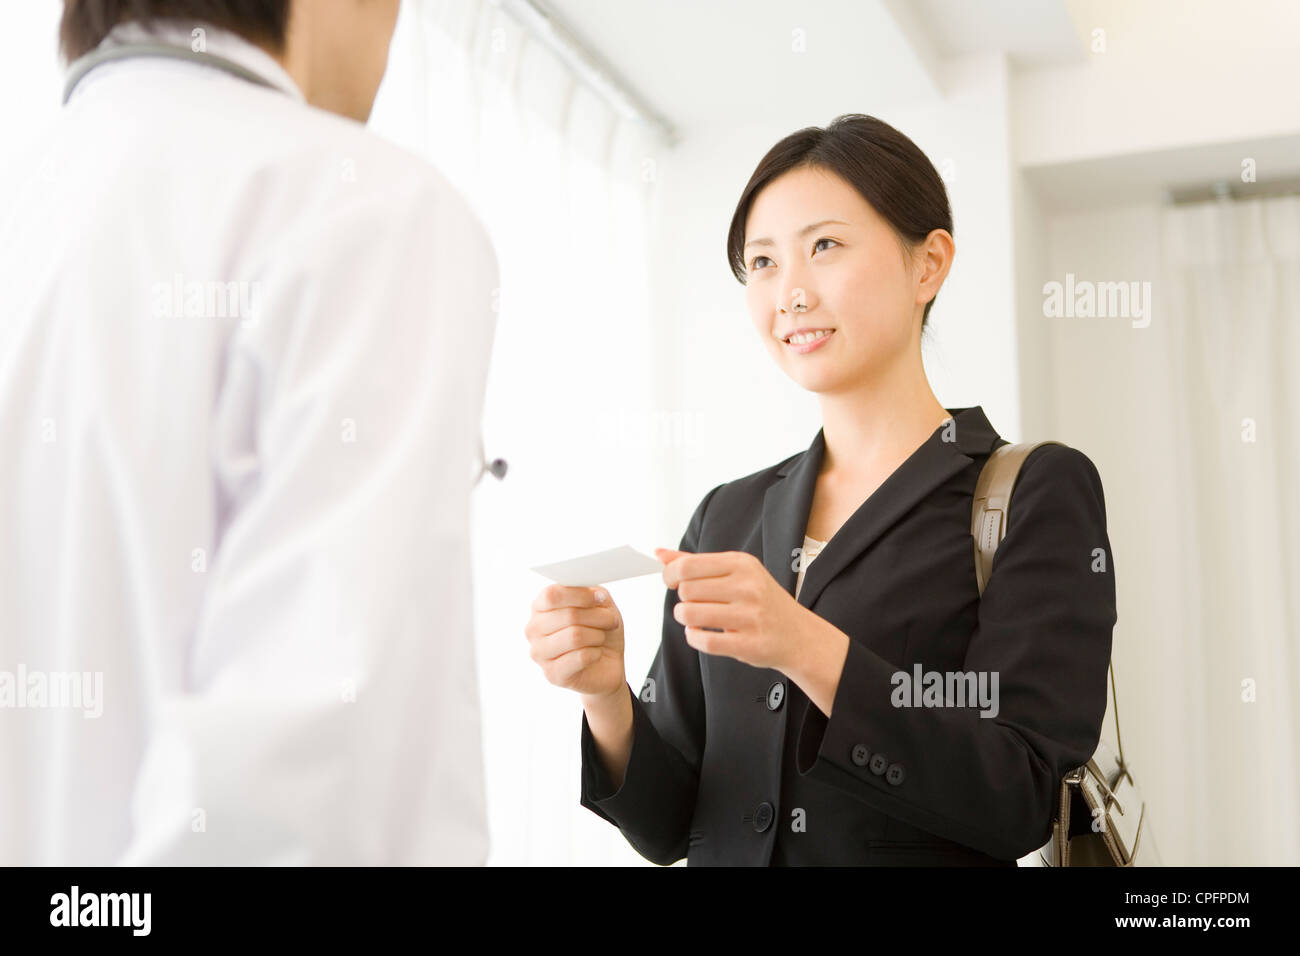 pharmaceutical s representative presenting card to doctor pharmaceutical s representative presenting card to doctor